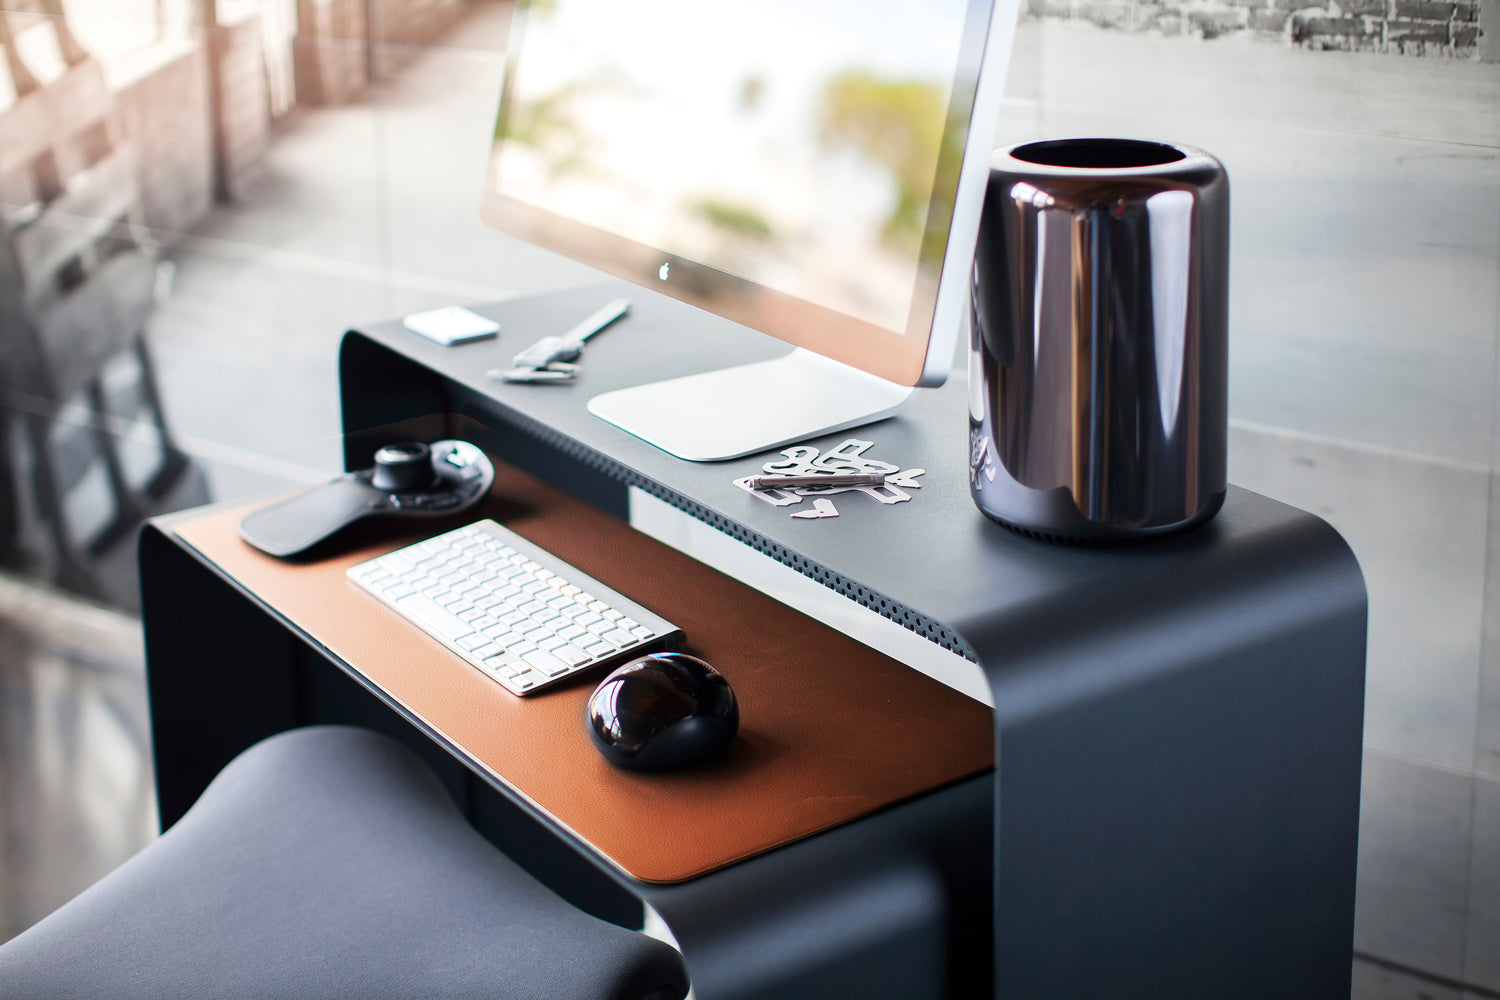 onelessdesk tenth anniversary edition with leather desk pad